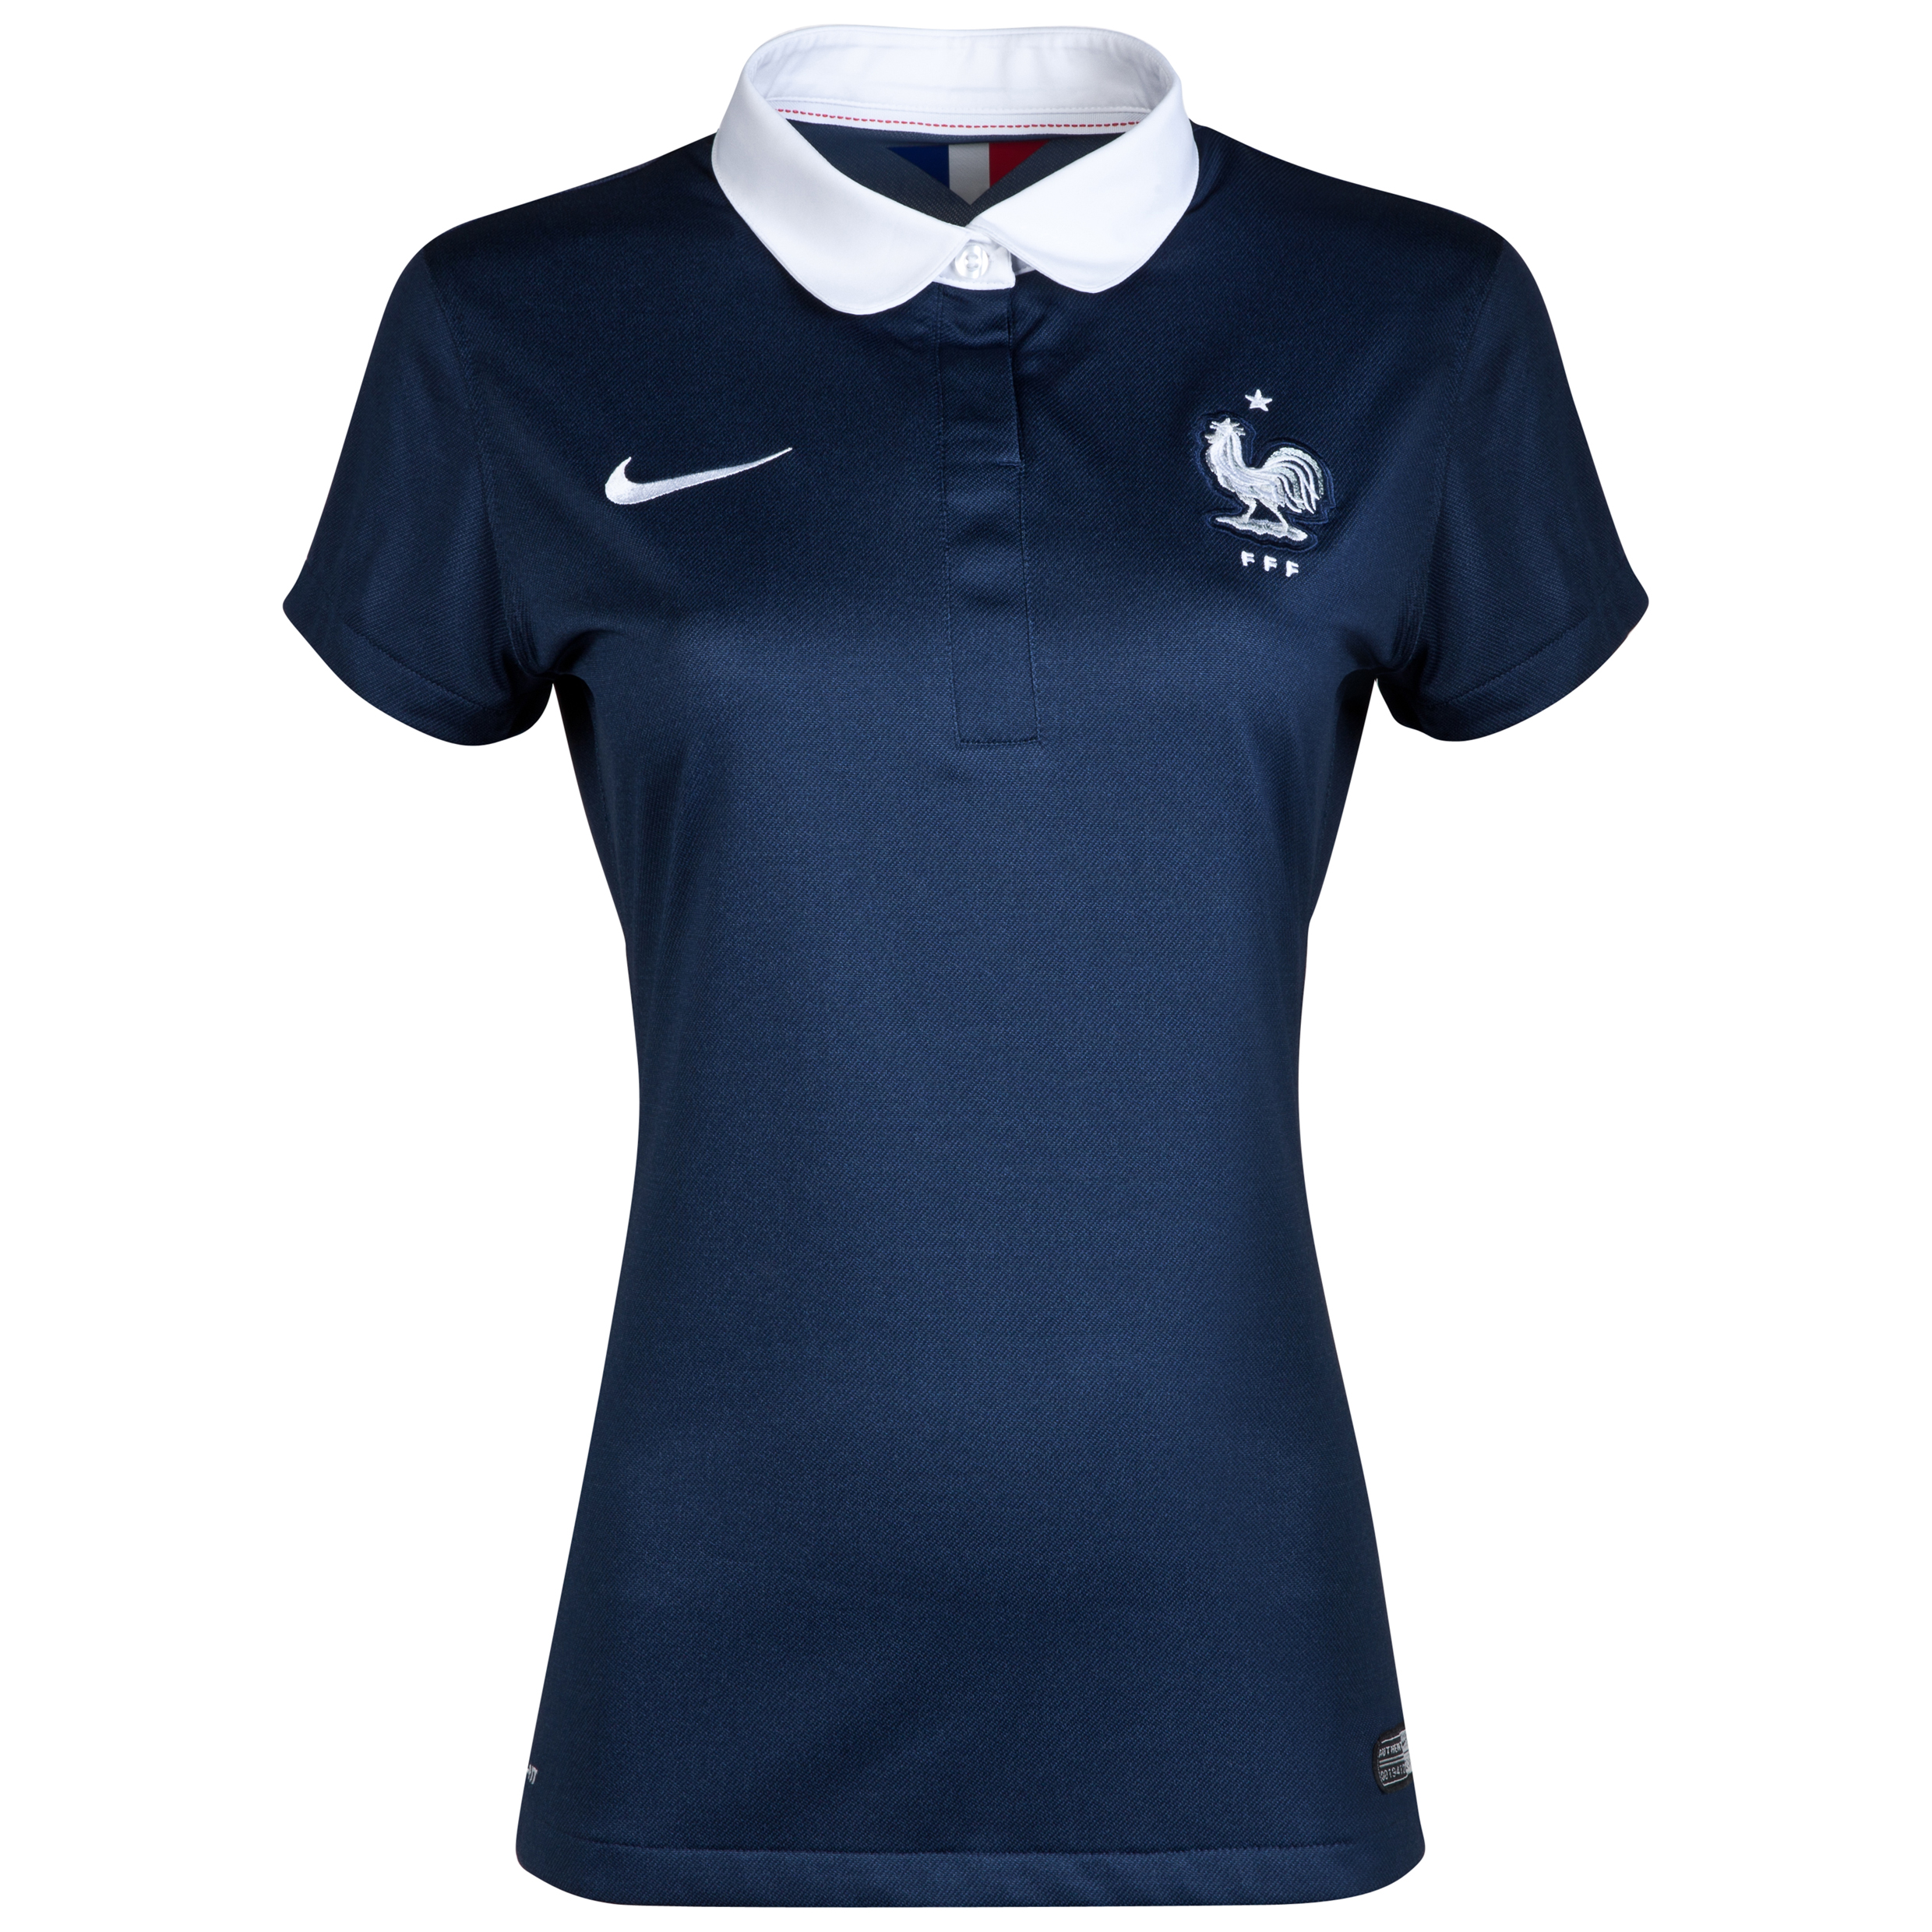 France Home Shirt 2013/15 - Womens Navy